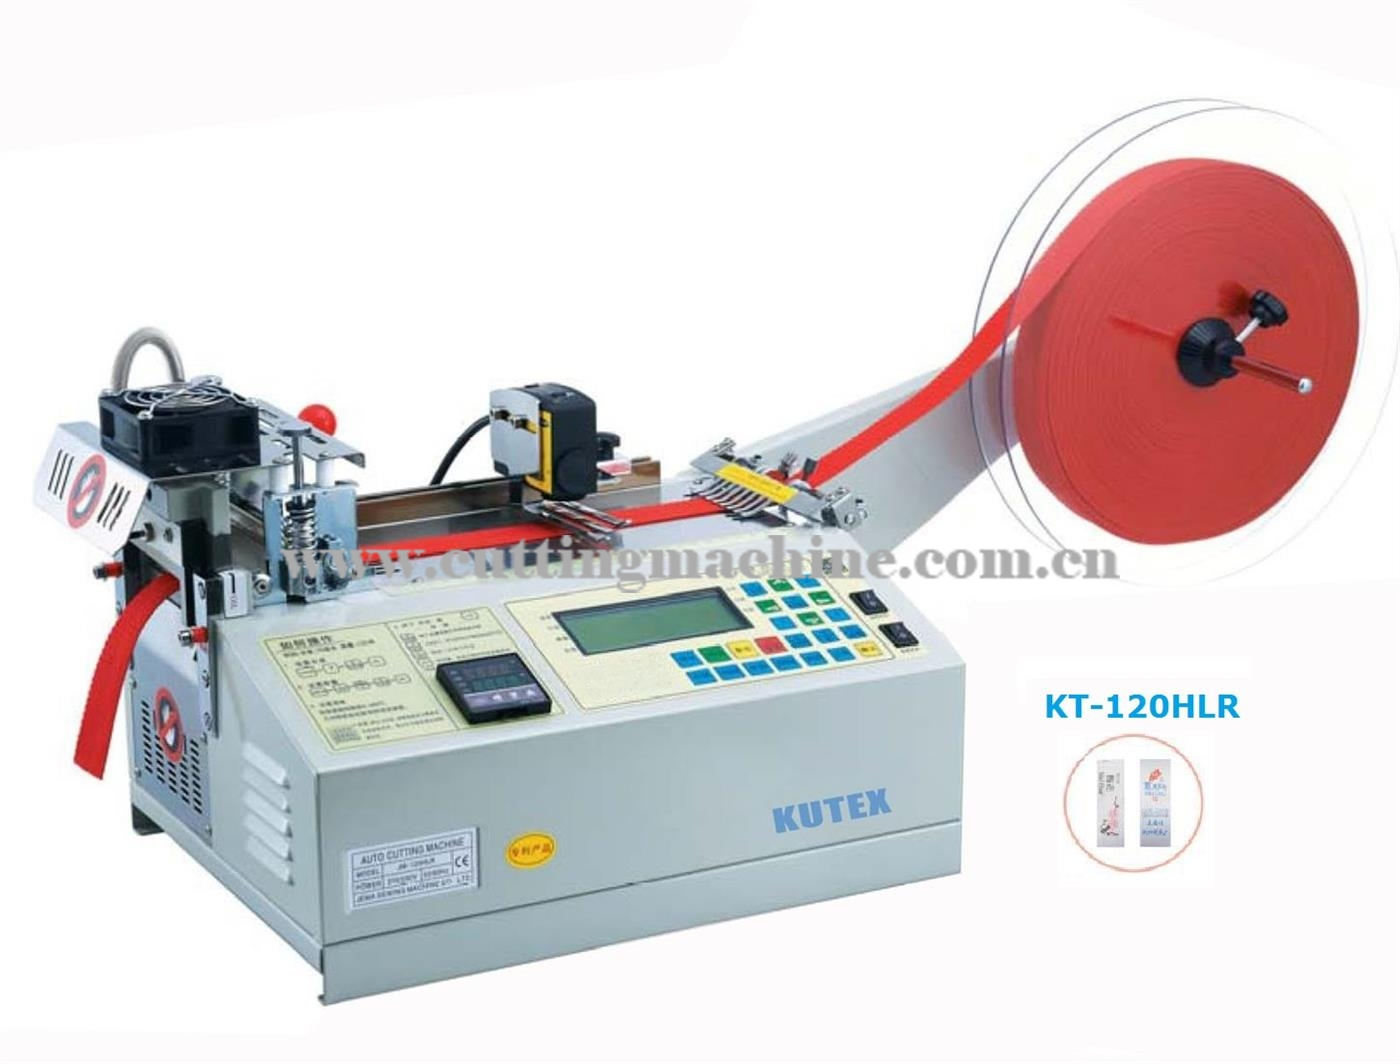 Automatic Label Cutter (Infrared with Hot & Cold Knife)